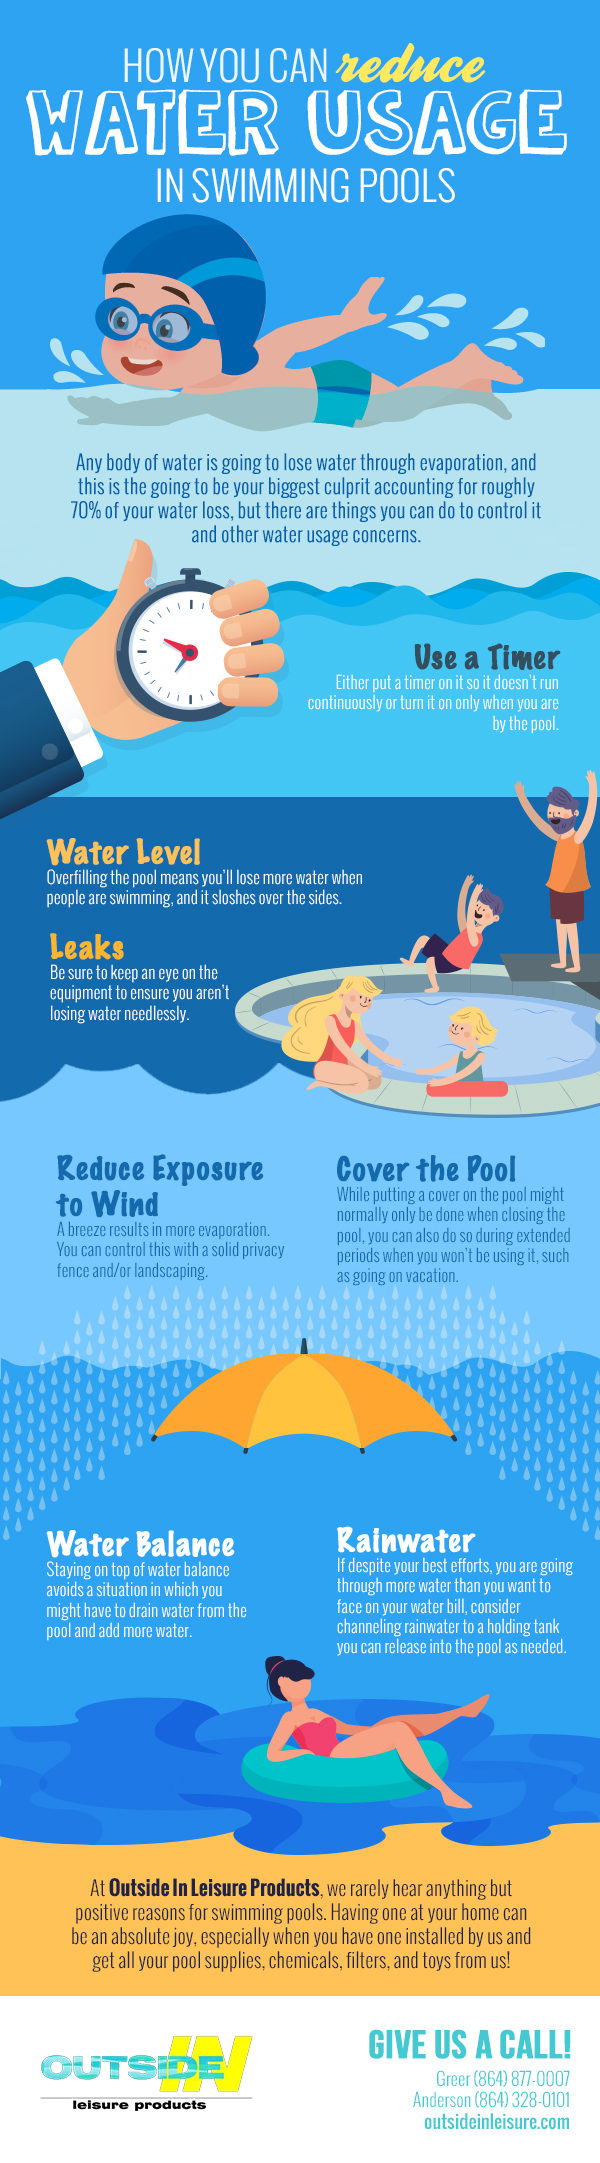 How to reduce water usage in swimming pools